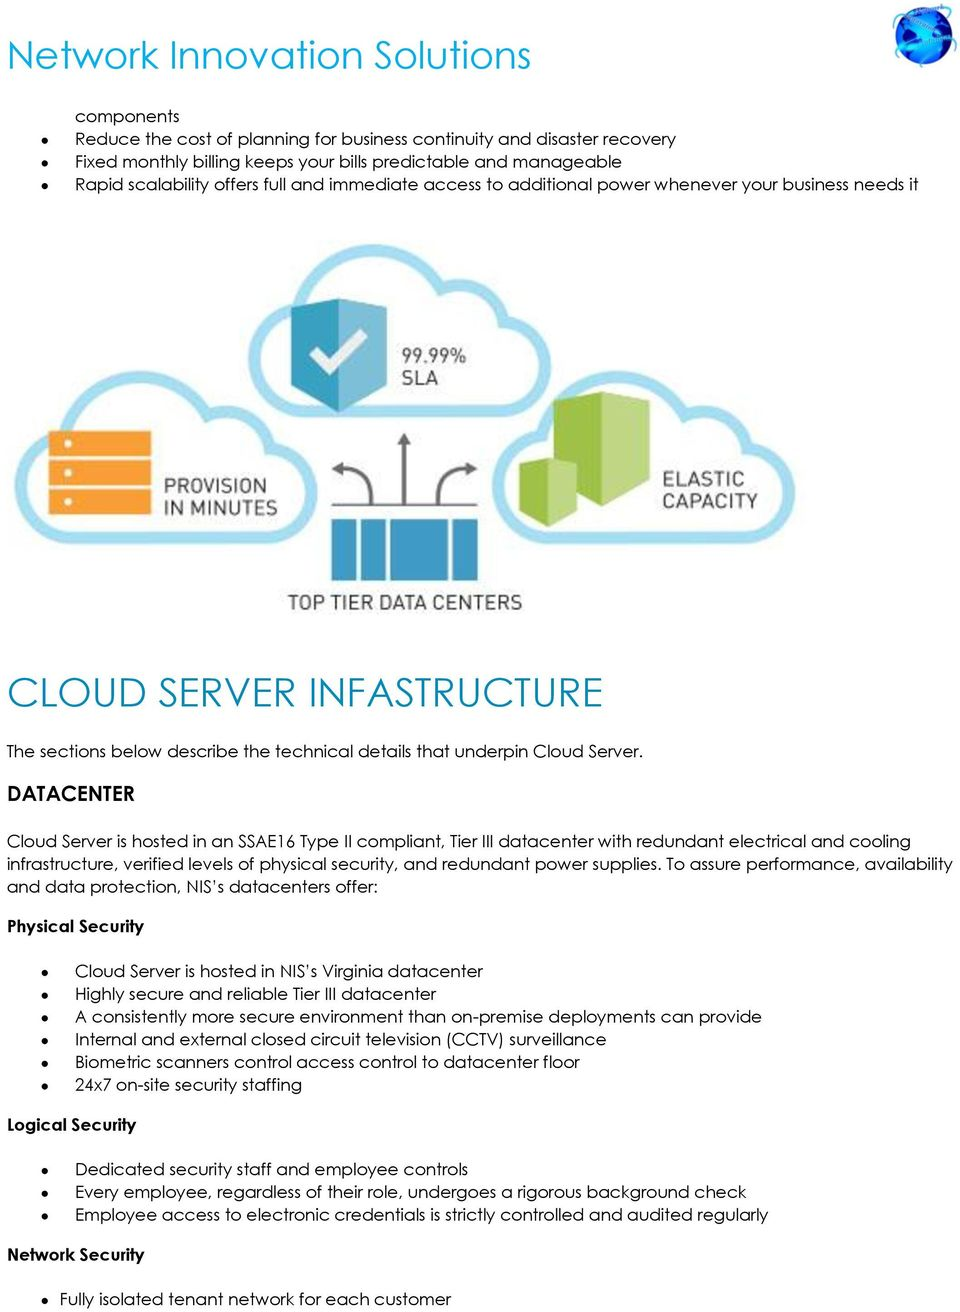 DATACENTER Cloud Server is hosted in an SSAE16 Type II compliant, Tier III datacenter with redundant electrical and cooling infrastructure, verified levels of physical security, and redundant power